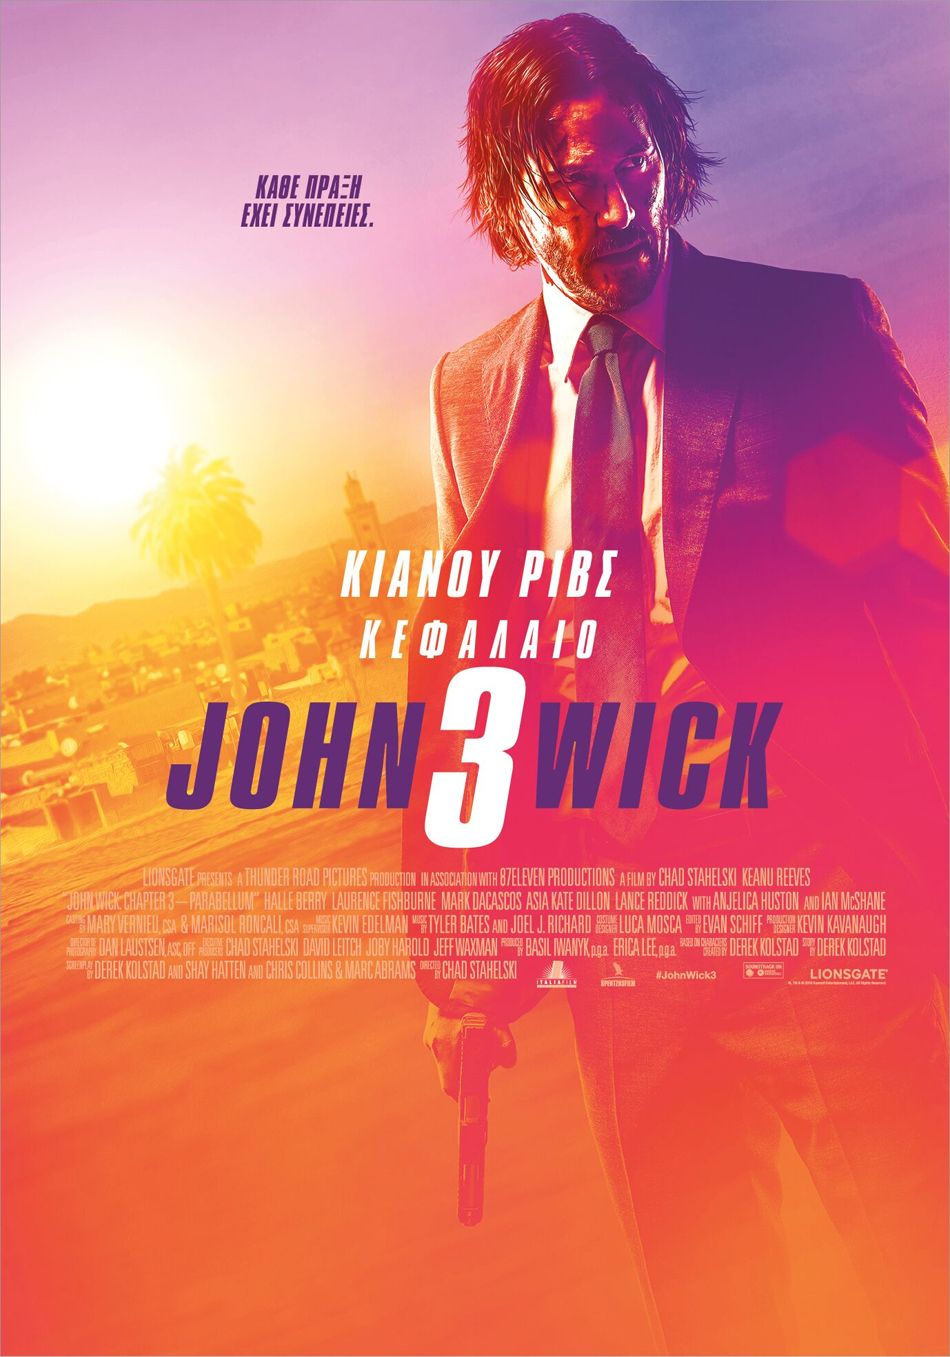 John Wick: Κεφάλαιο 3 (John Wick: Chapter 3 - Parabellum) - Trailer / Τρέιλερ Poster